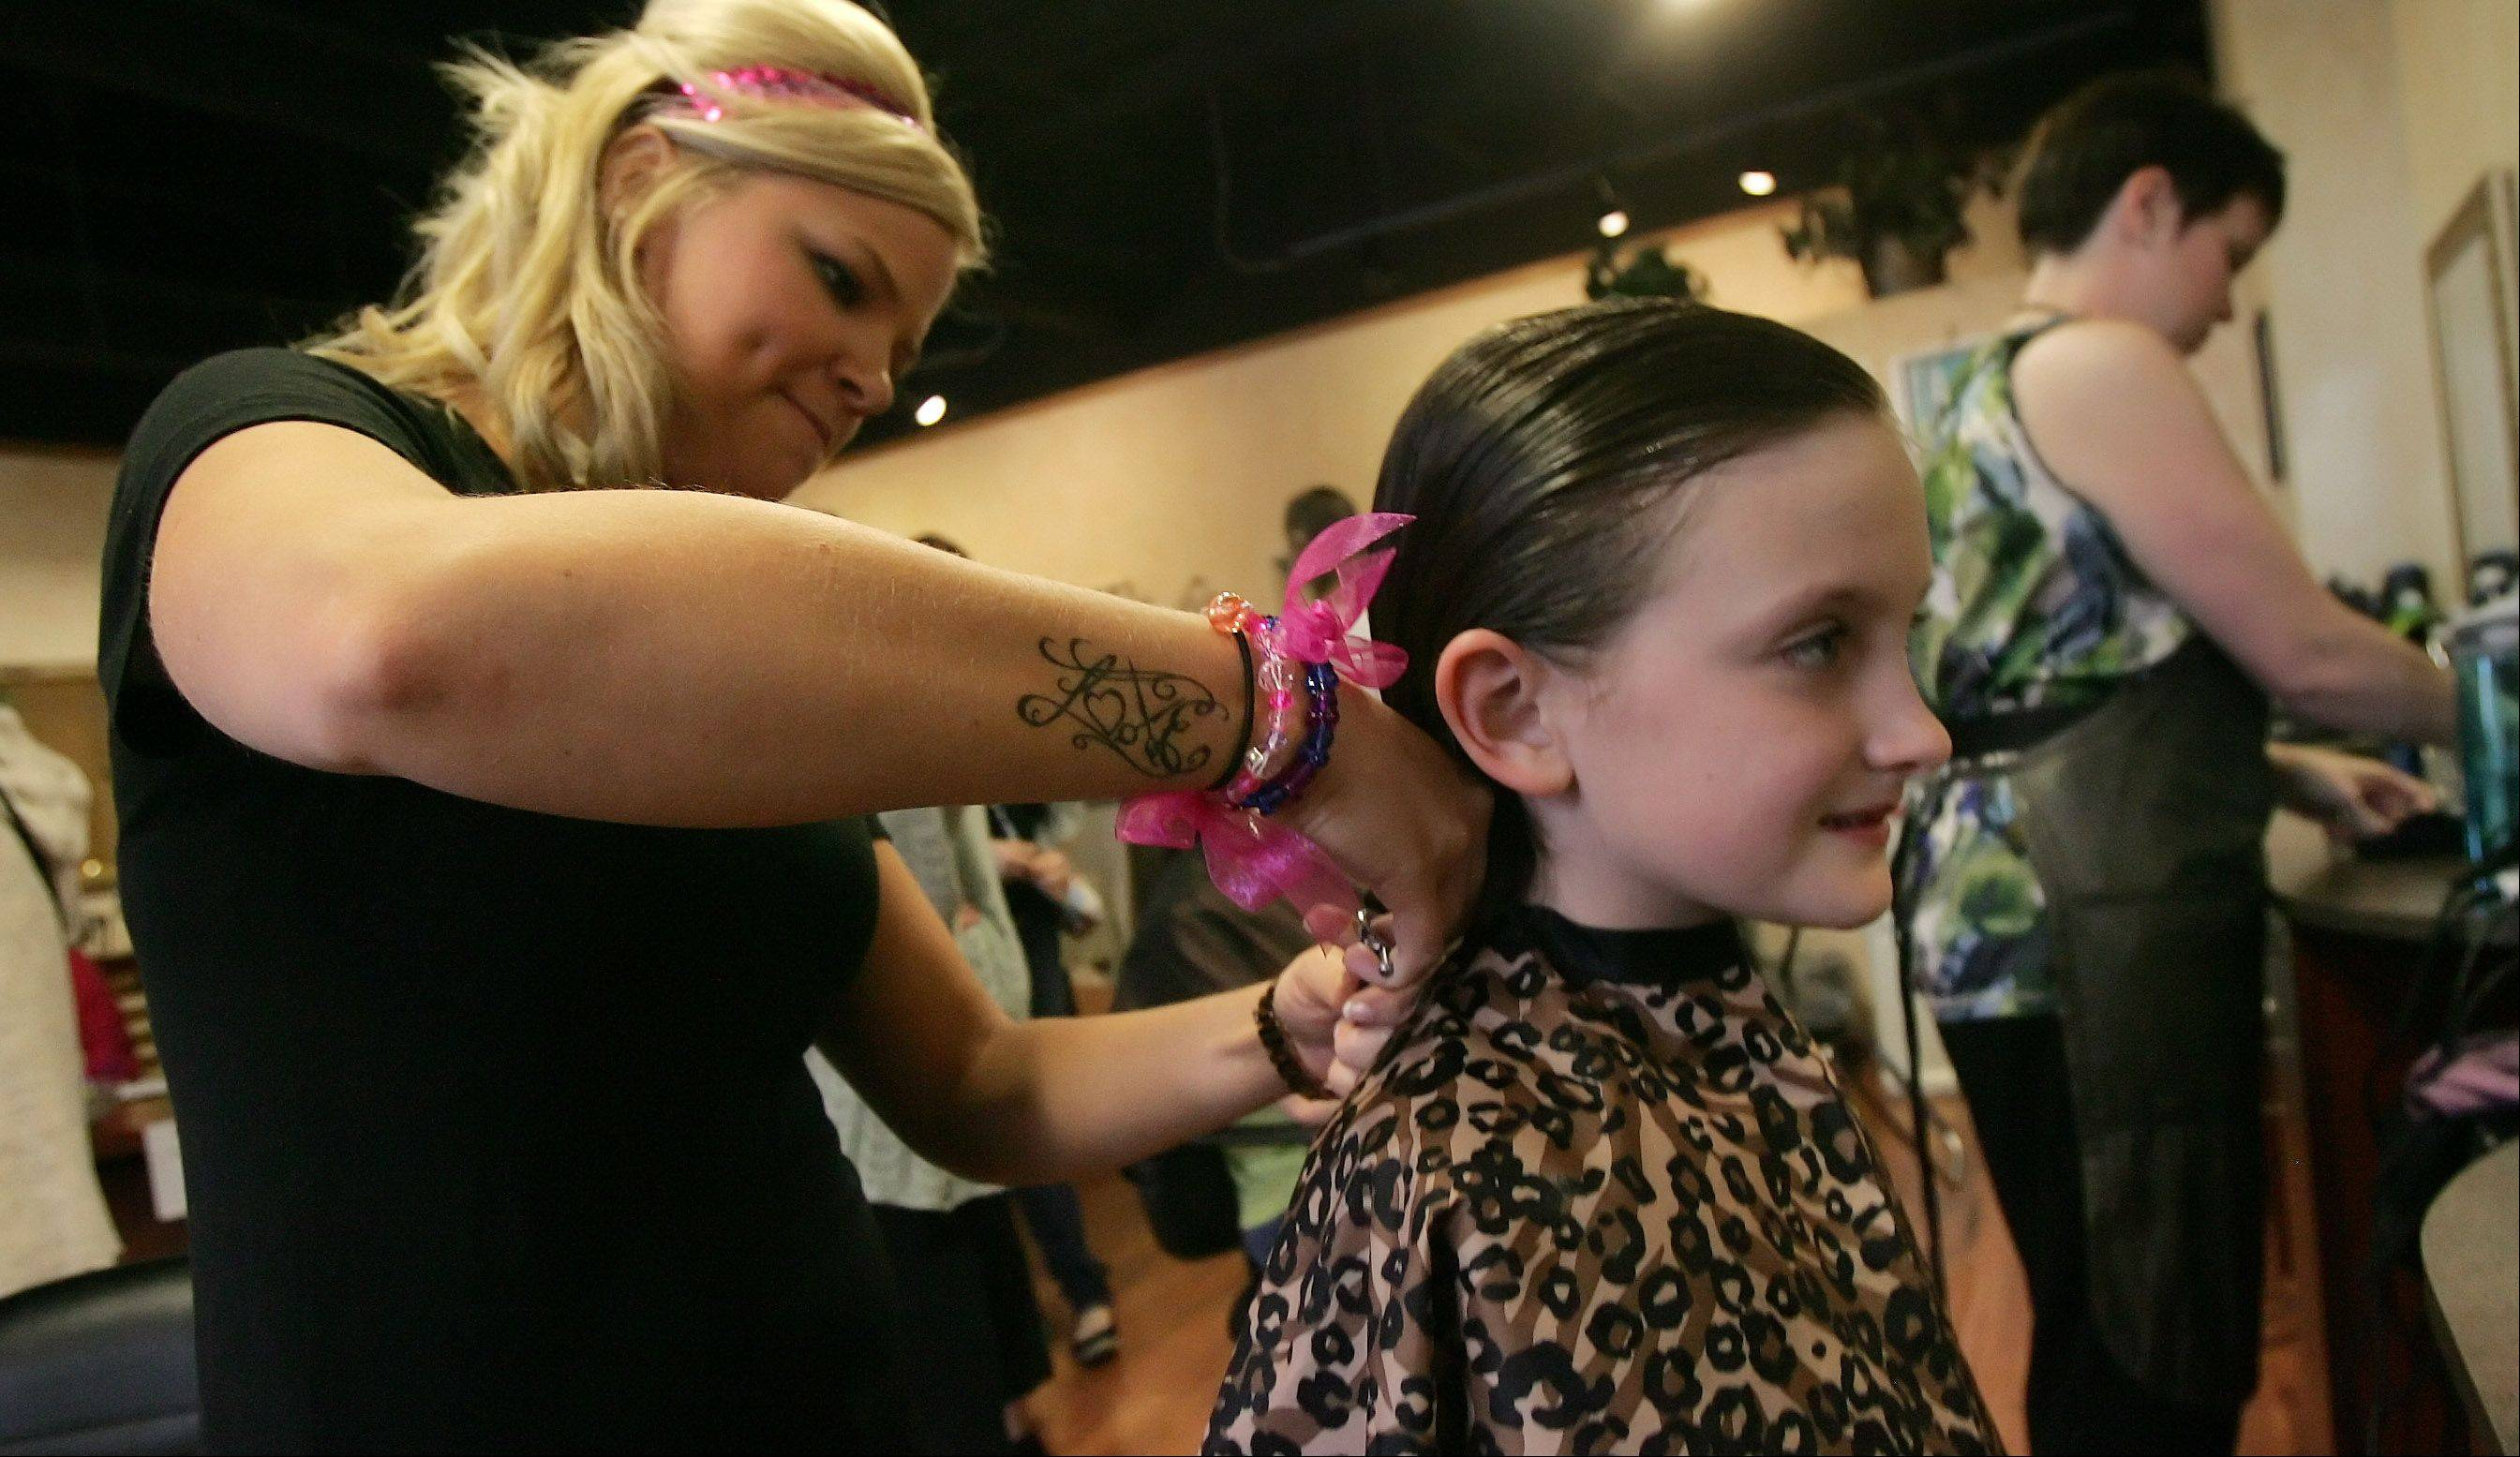 Gilbert R. Boucher II / gboucher@dailyheraldEight-year-old Hannah Connolly, of Mount Prospect, has over 10 inches of her hair cut off by stylist Sara Mock to donate to Locks of Love during Haircuts For Hope Sunday at Halo Hair & Nails in Mount Prospect. The event was to benefit Linda Frahm, who is battling cancer, and was Connolly's teacher at Lions Park School in Mount Prospect.